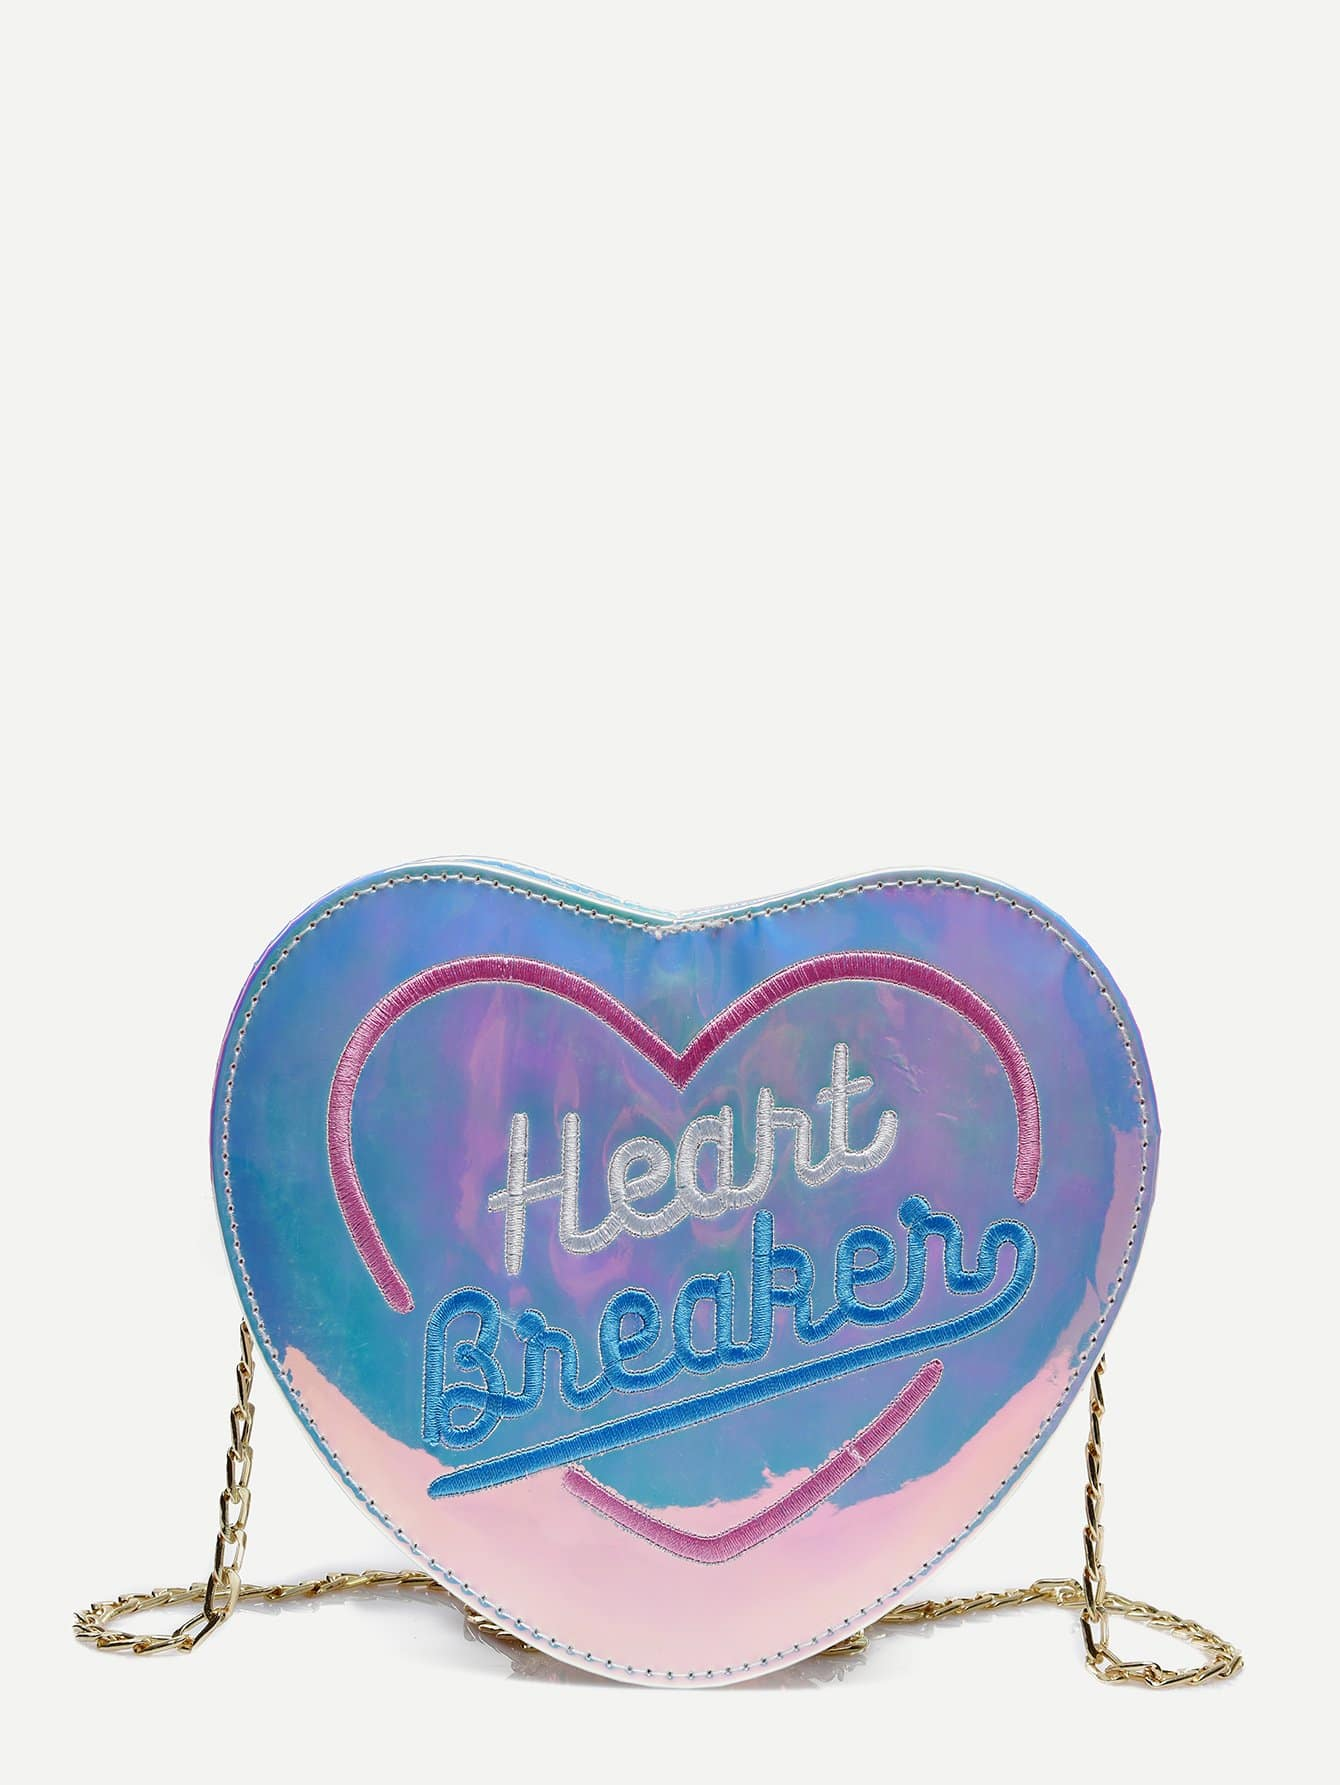 Letter Embroidered Heart Shaped Chain Bag heart shaped decor star chain bag